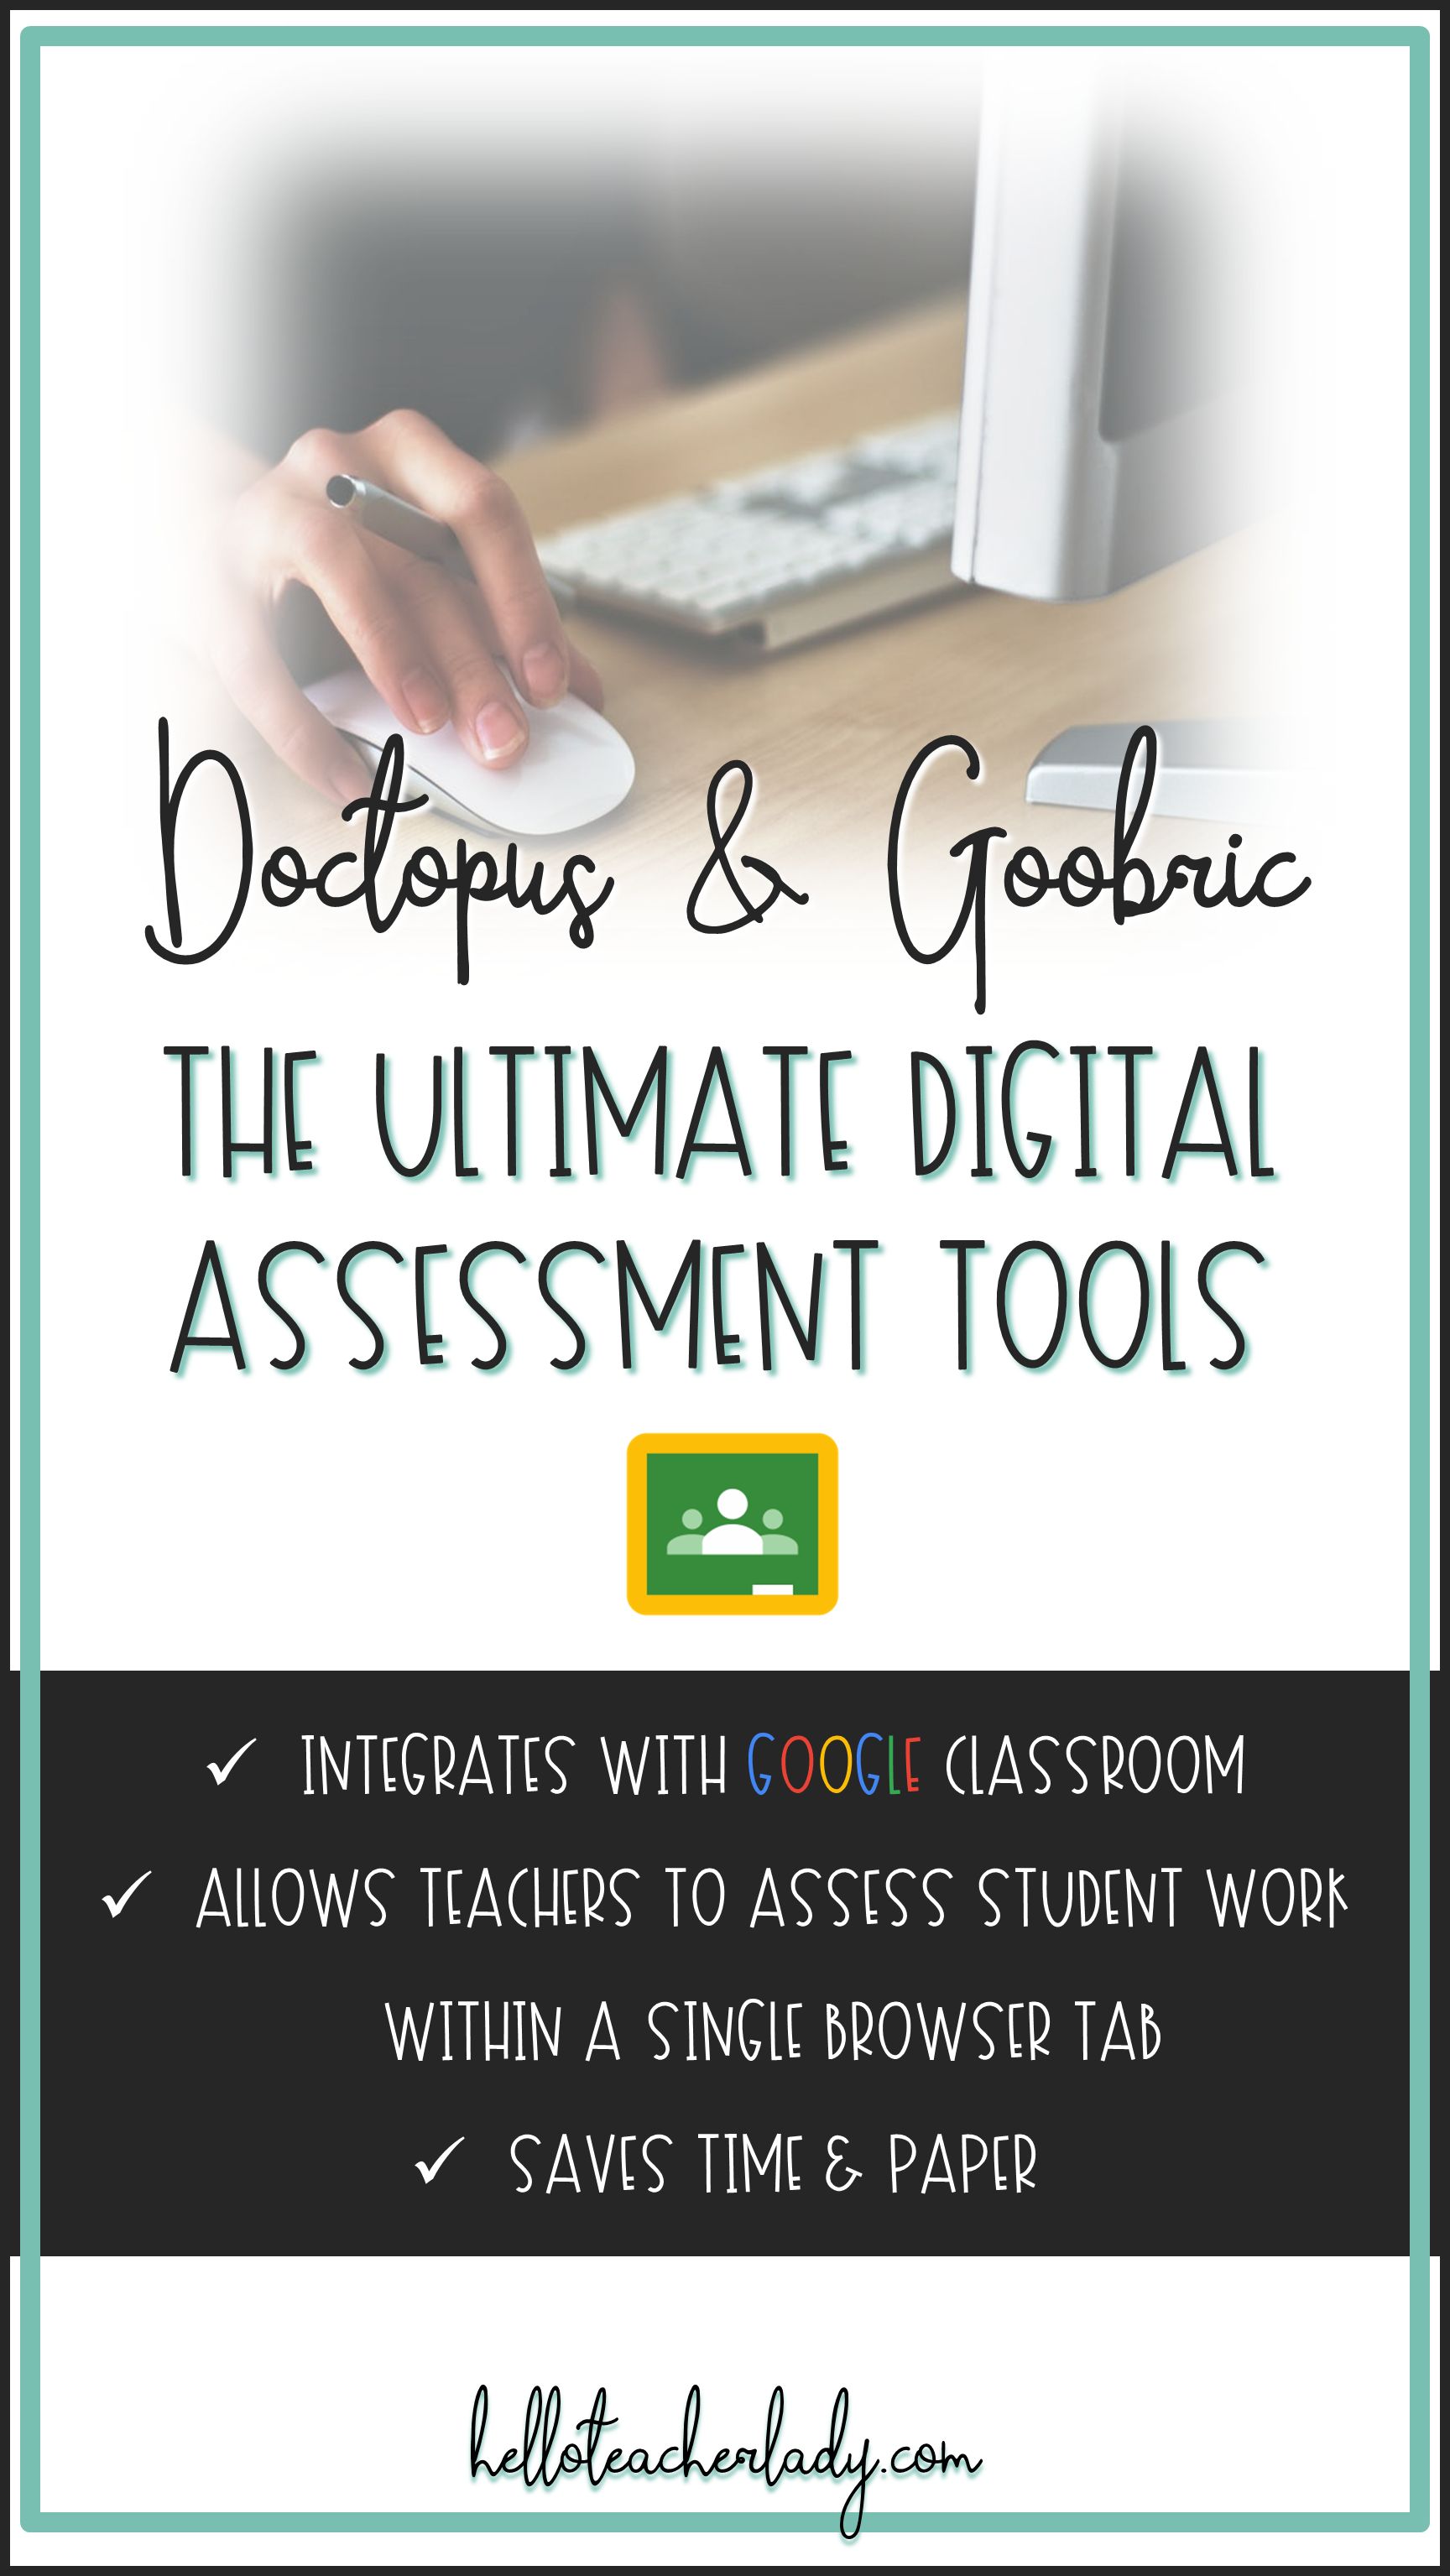 Doctopus and Goobric are digital assessment tools that work together with Google Classroom, Docs and Sheets.    Teachers can utilize these digital rubric tools to quickly assess and provide feedback on student work within a single browser tab. #GoogleEDU